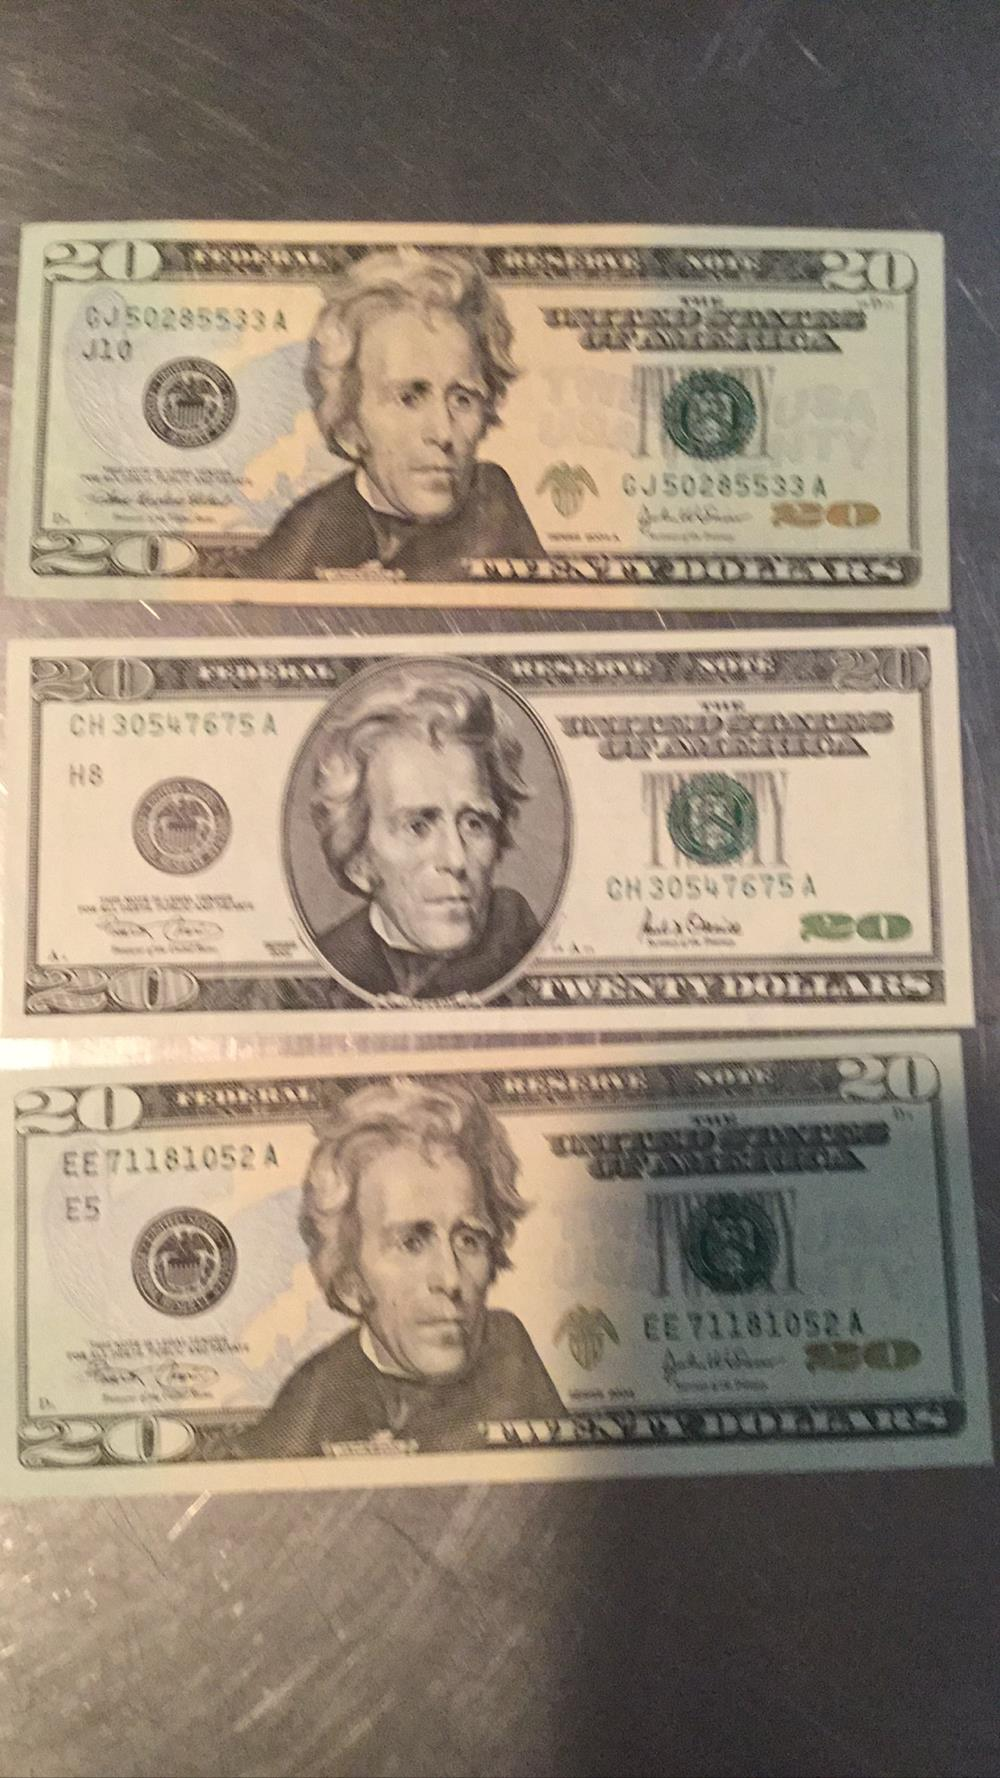 Three $20 bills